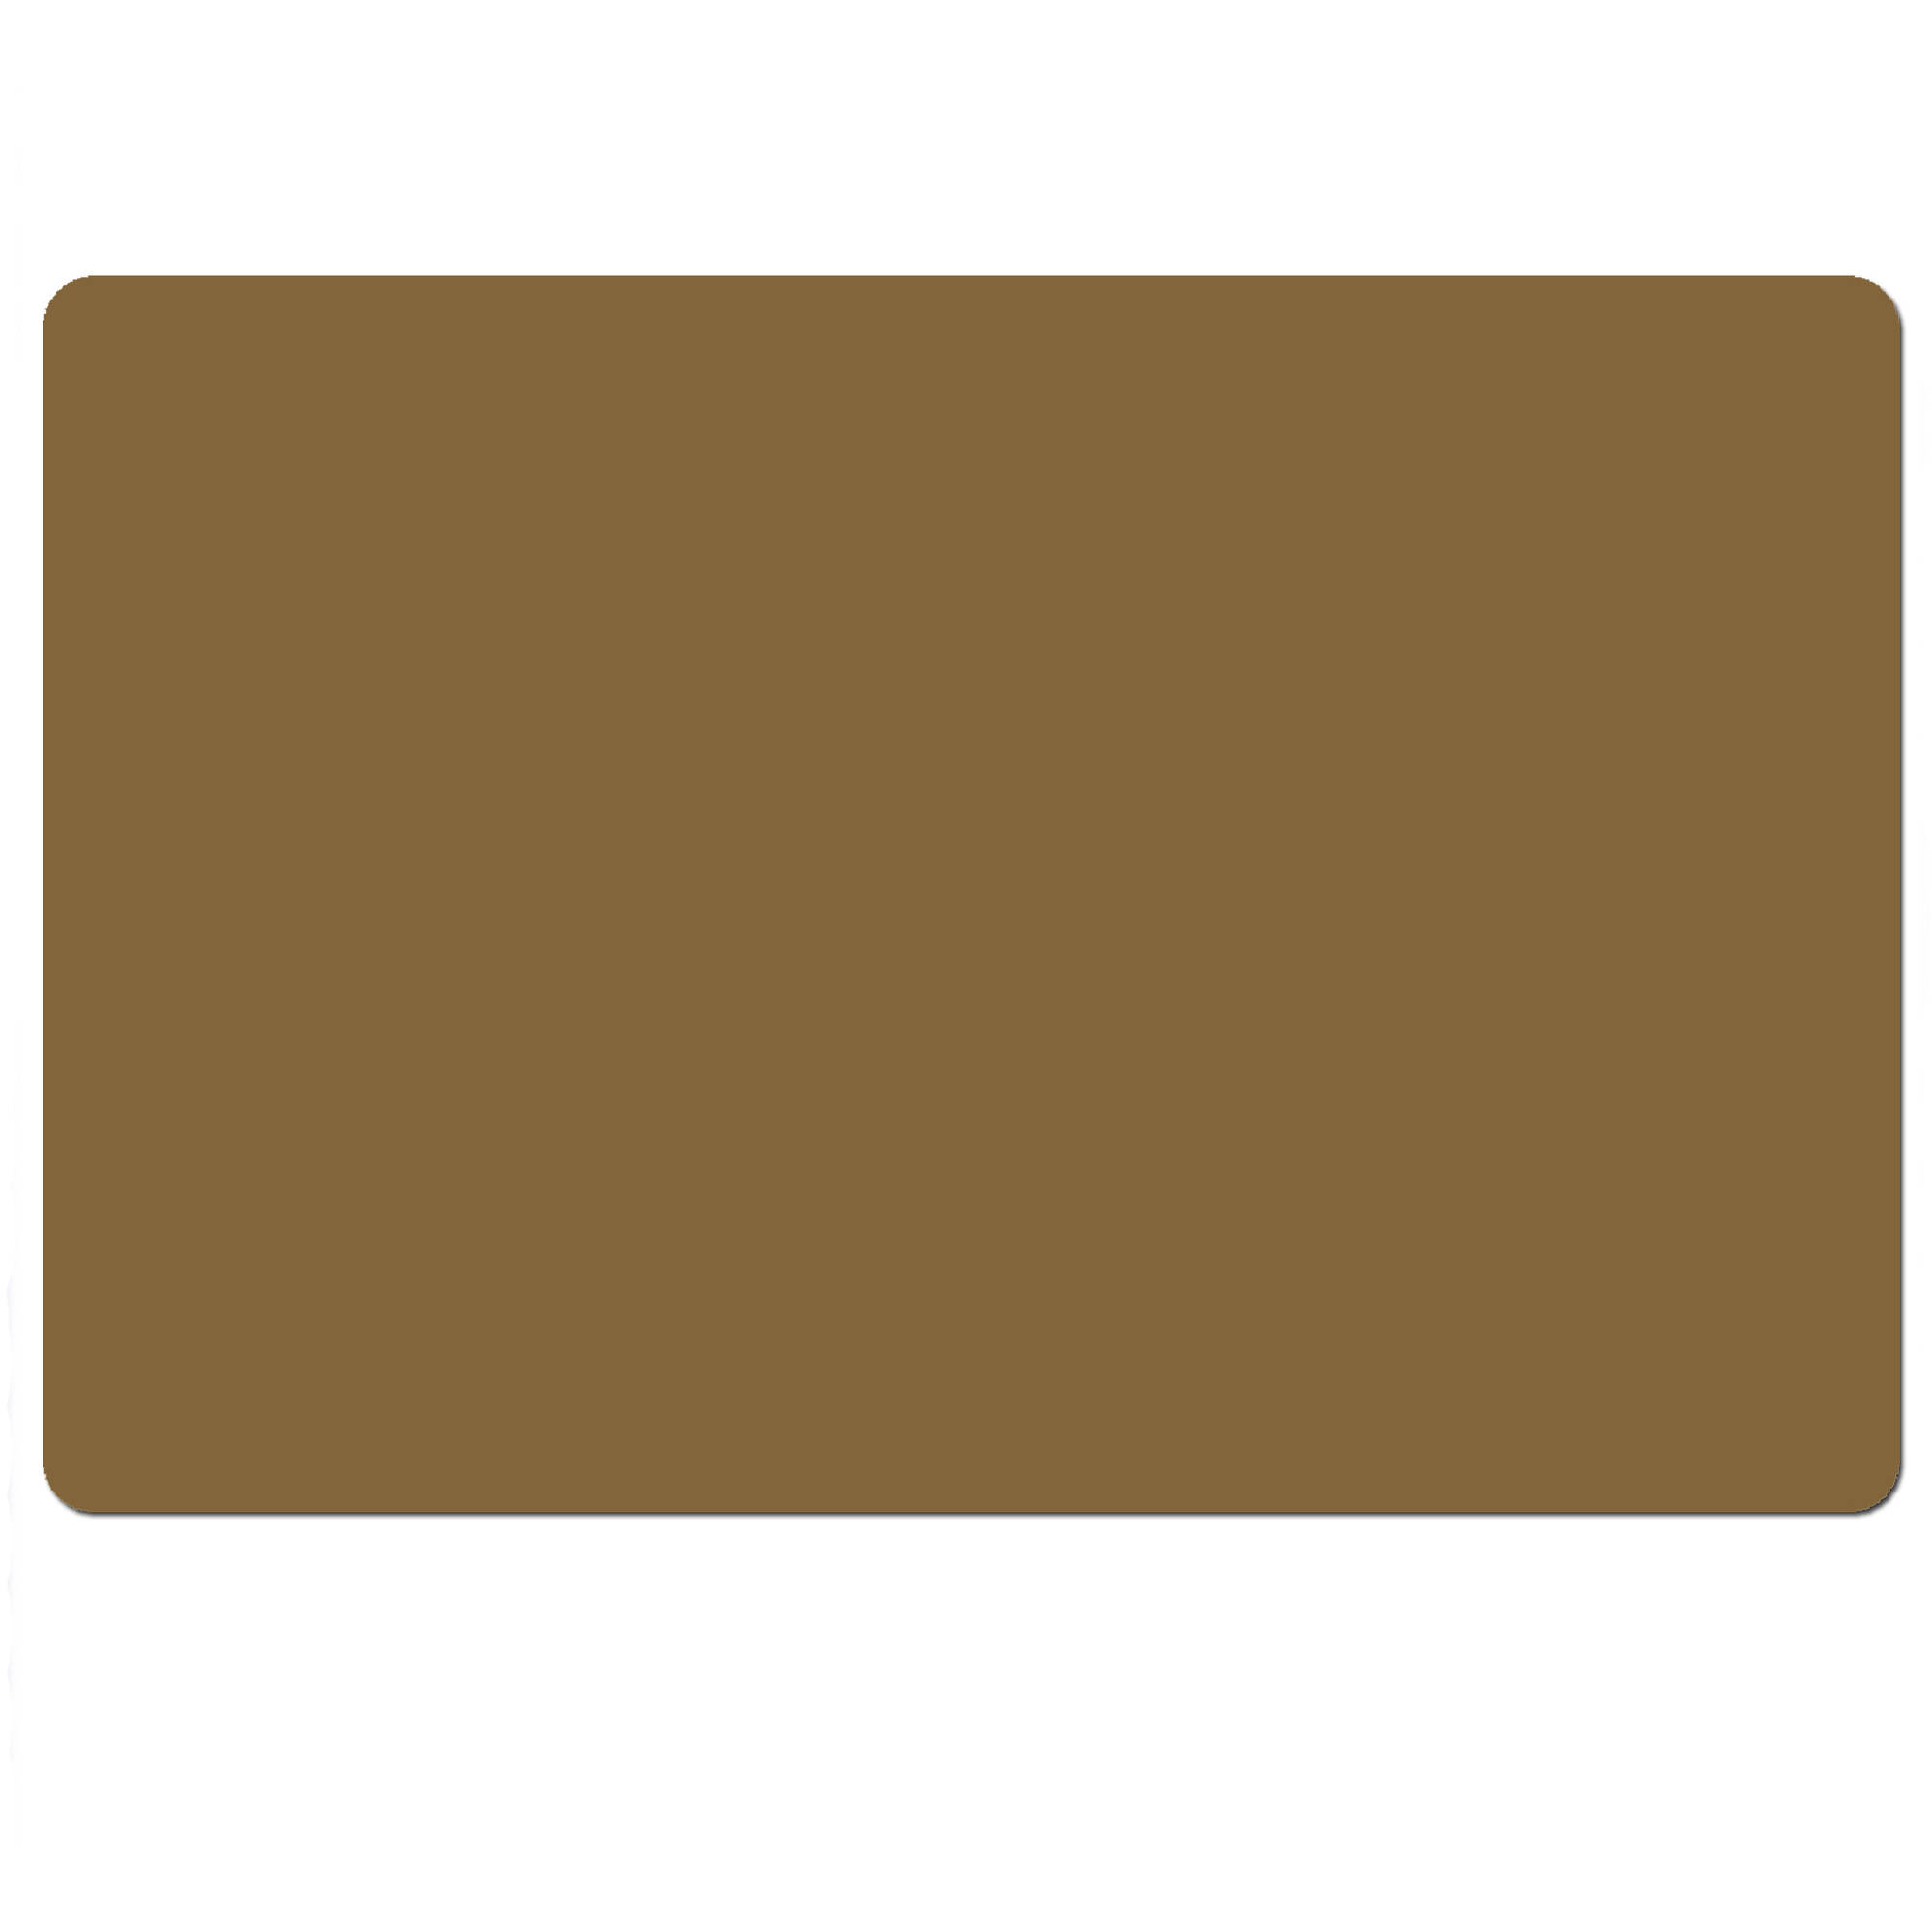 Gourmet Pro Solid Placemats, Set of 4 by